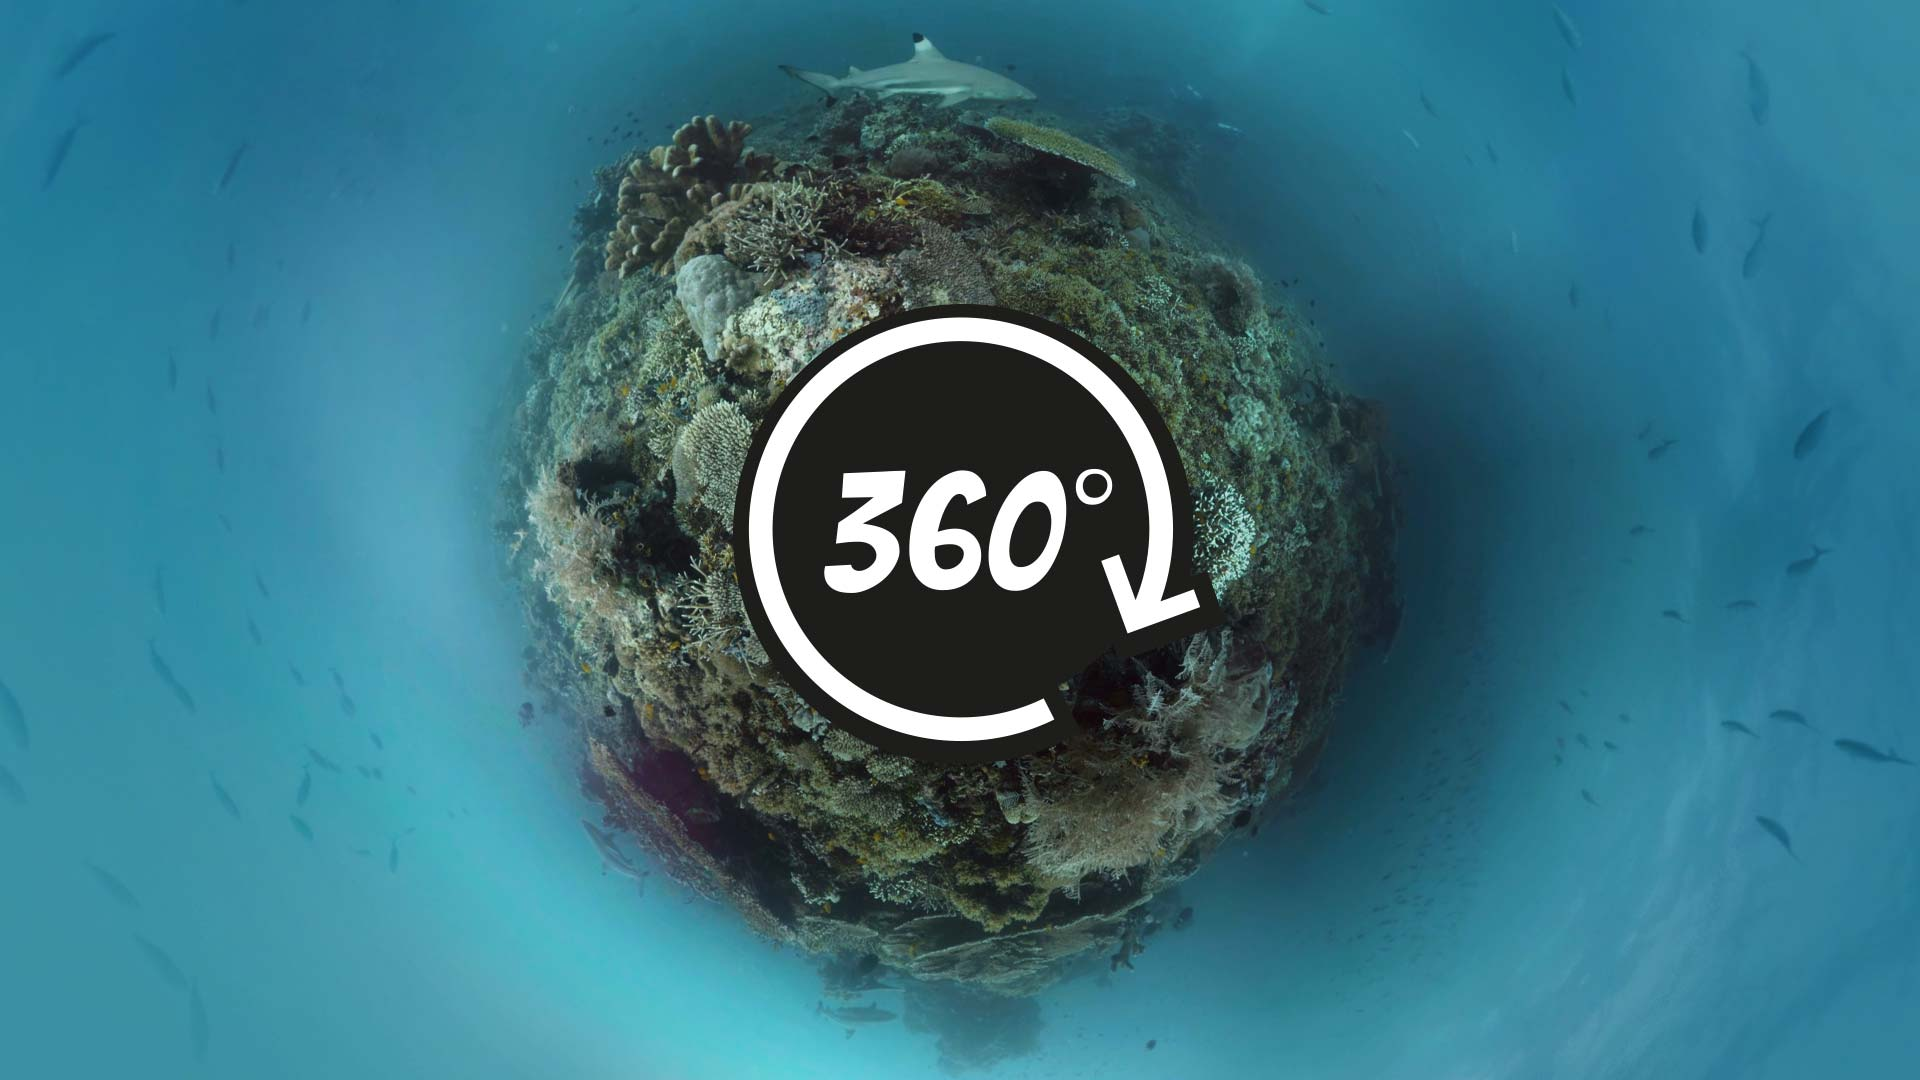 360 underwater video of a coral reef with sharks